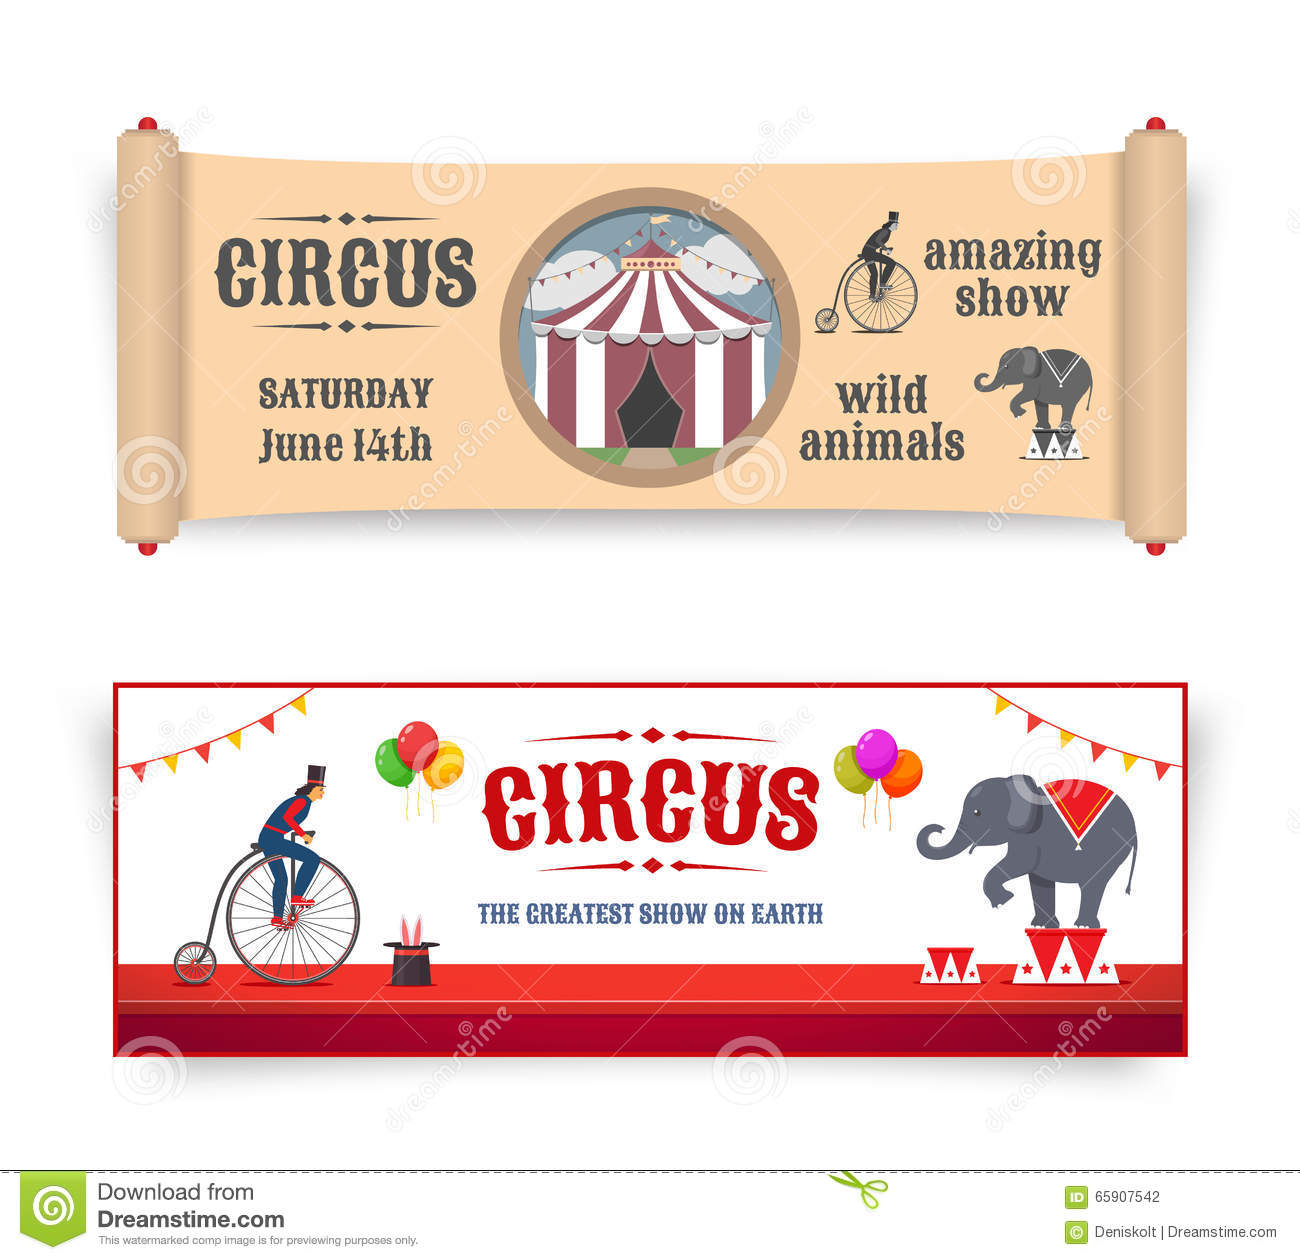 Circus banners illustrations